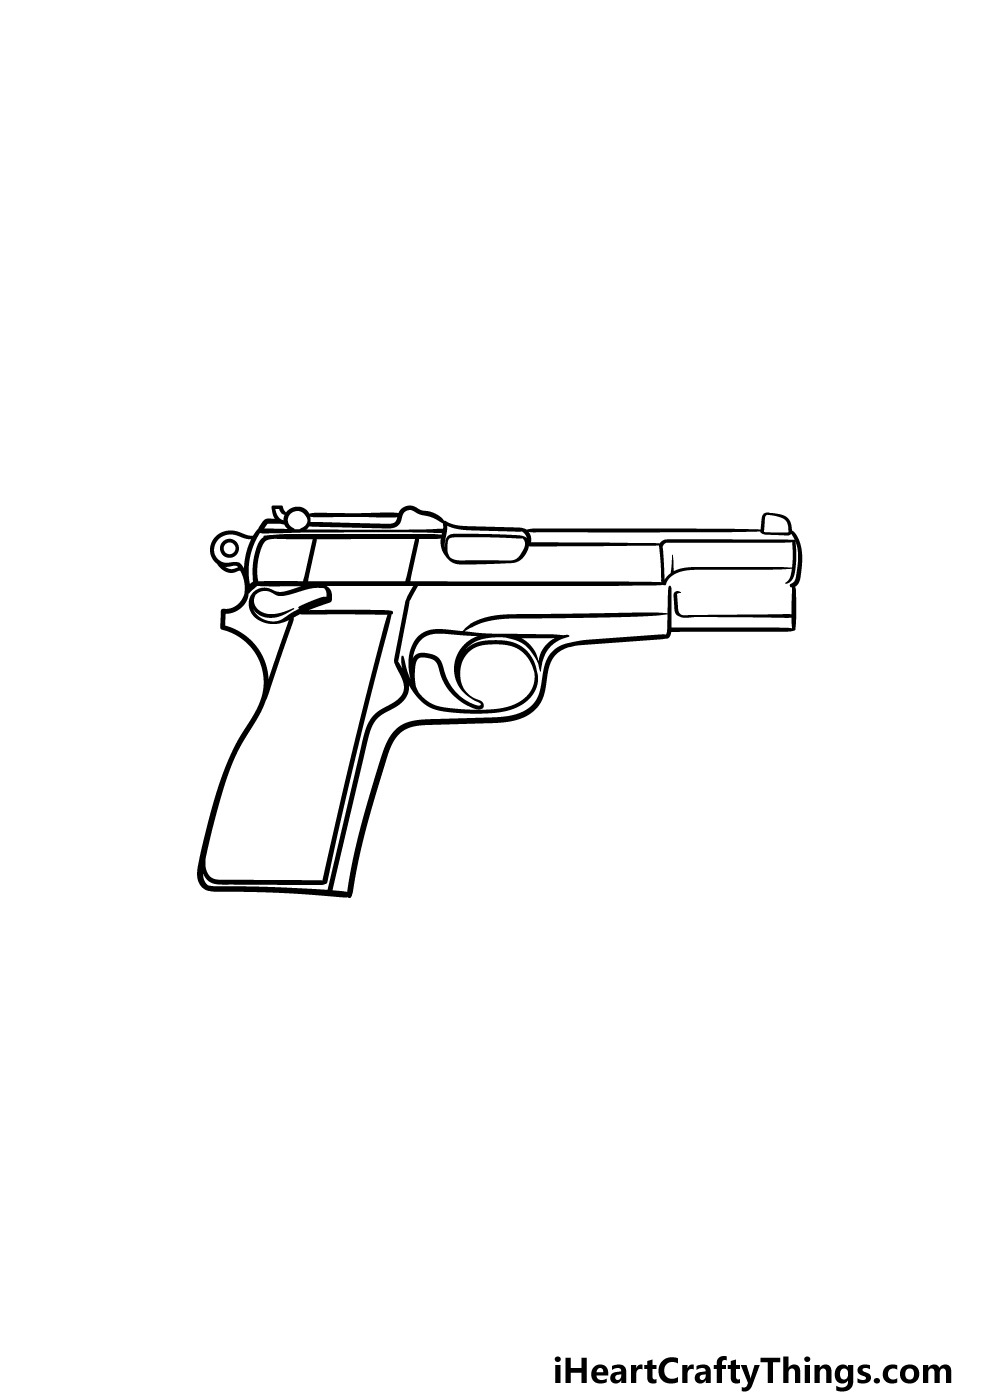 drawing a pistol step 4